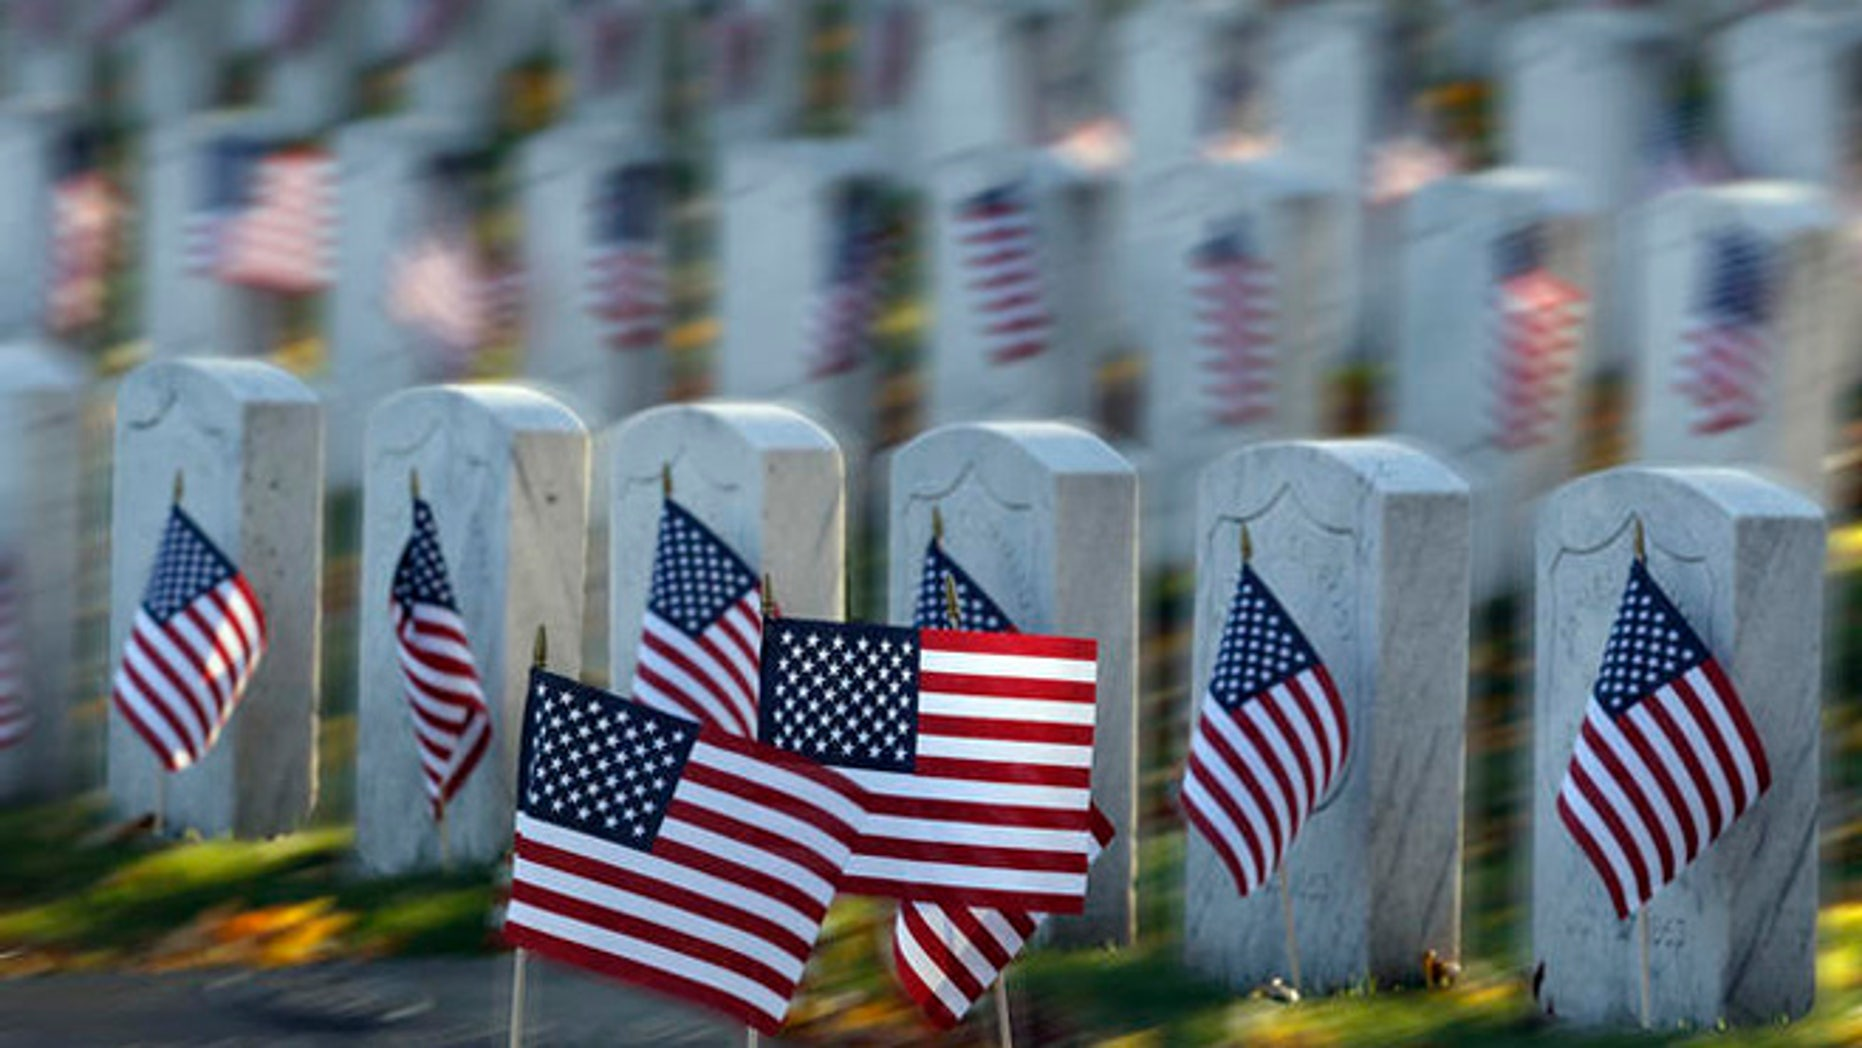 American flags are on display at Rosehill cemetery for Veterans Day in Chicago on Friday, Nov. 11, 2011.  (AP Photo/Nam Y. Huh)